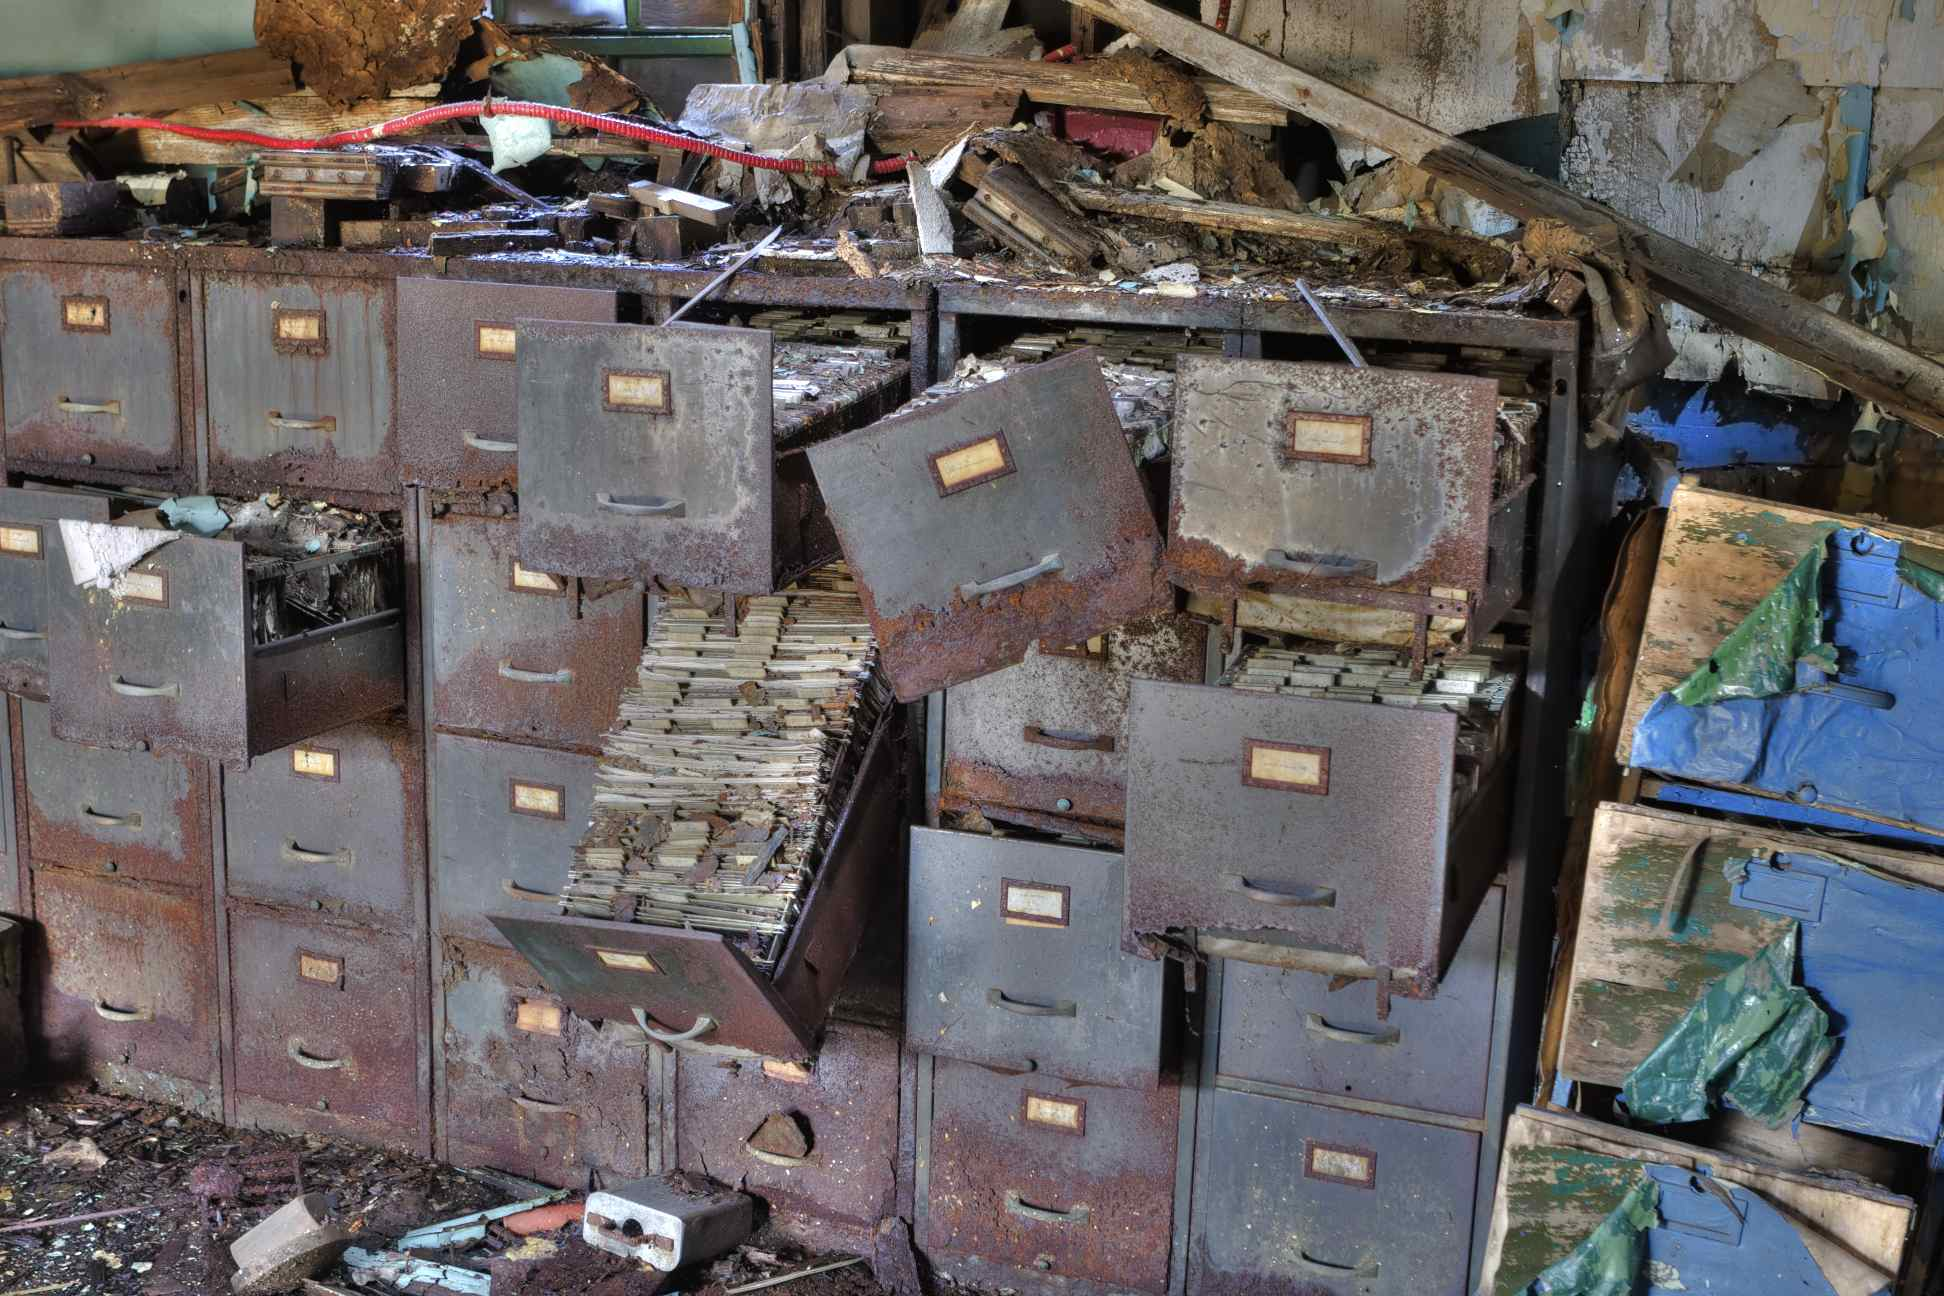 Fort Pitt Foundry: Dilapidated File Cabinets